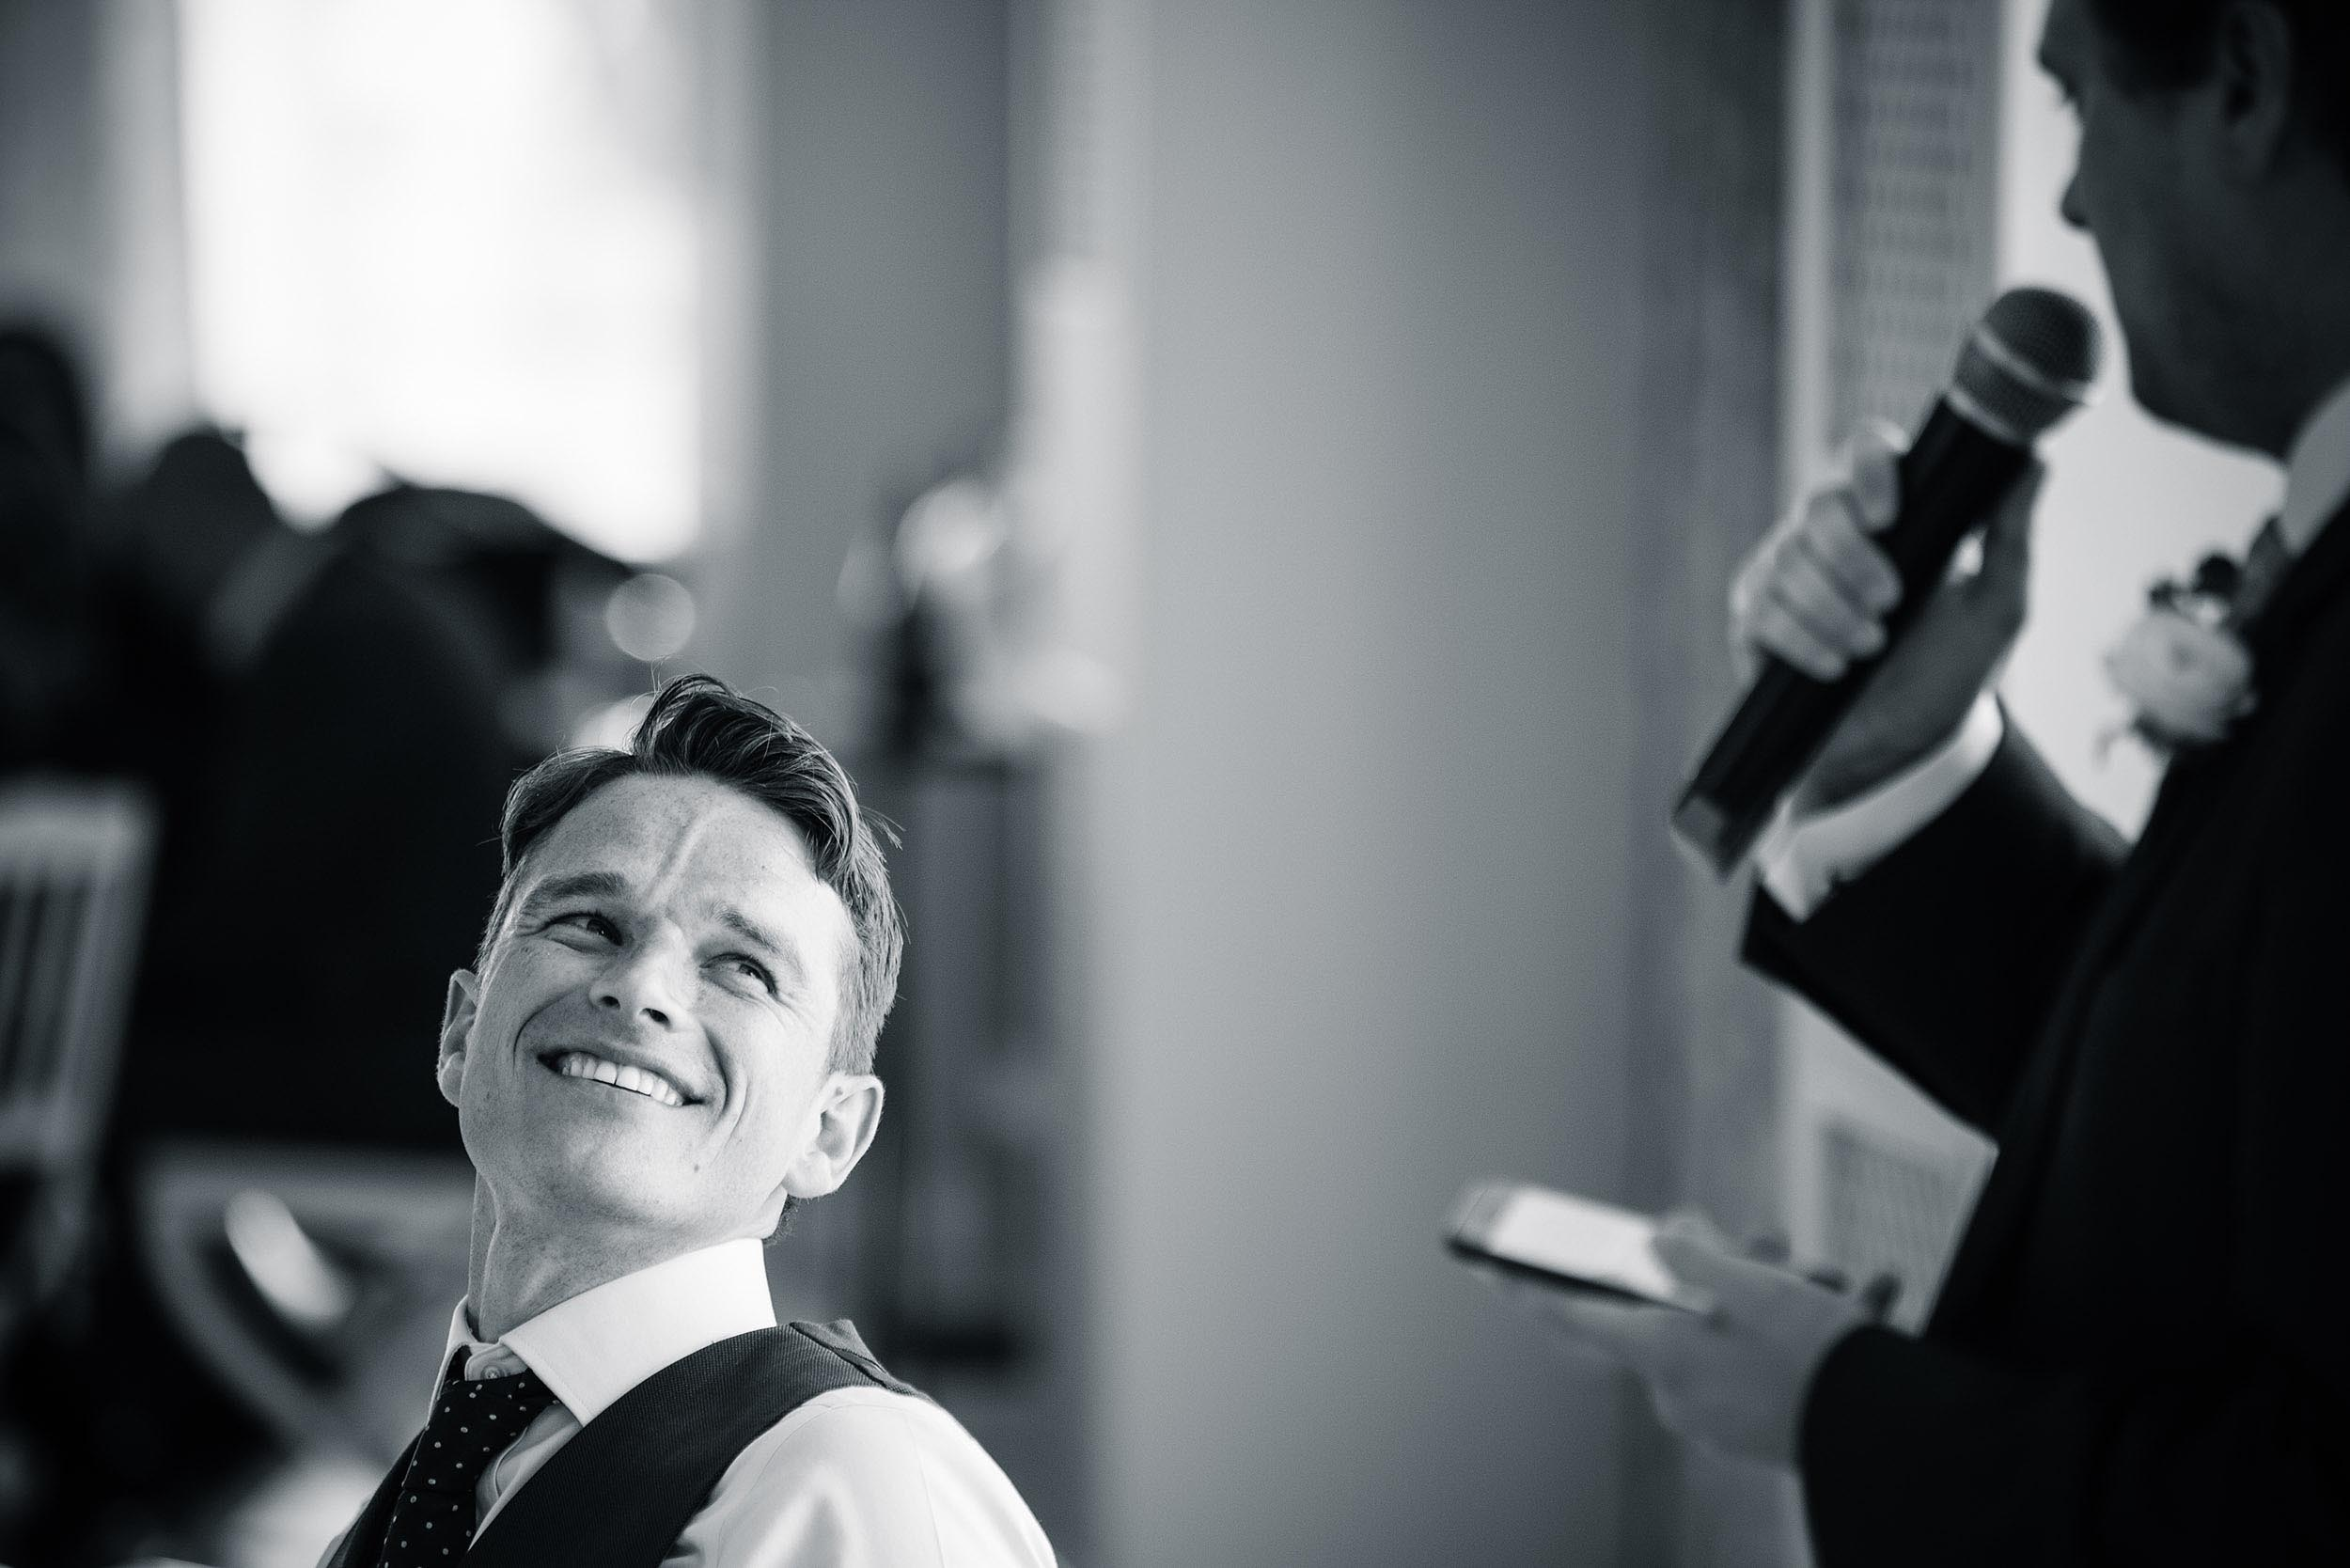 chris-groom-reportage-wedding-photographer-london-ben-pipe